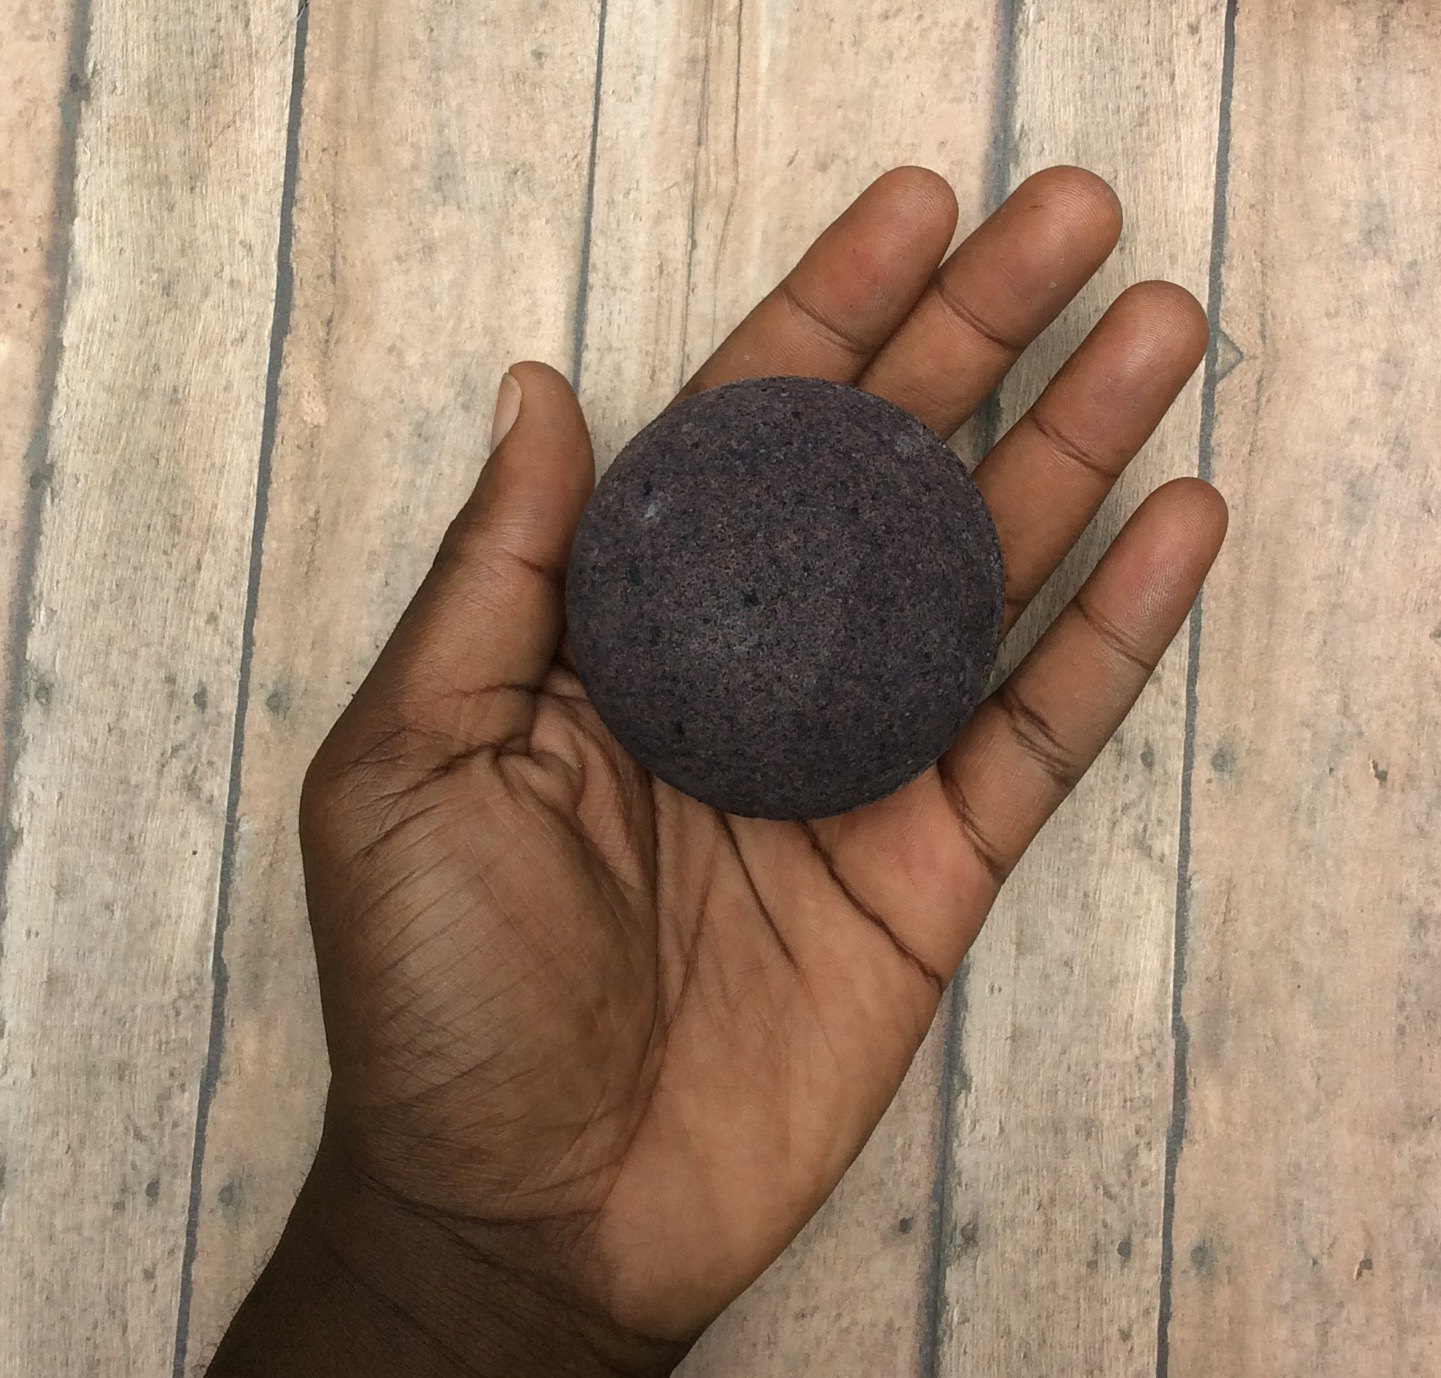 terxtured black bath bomb, in the palm of a person's hand, old worn wooden surface in the background